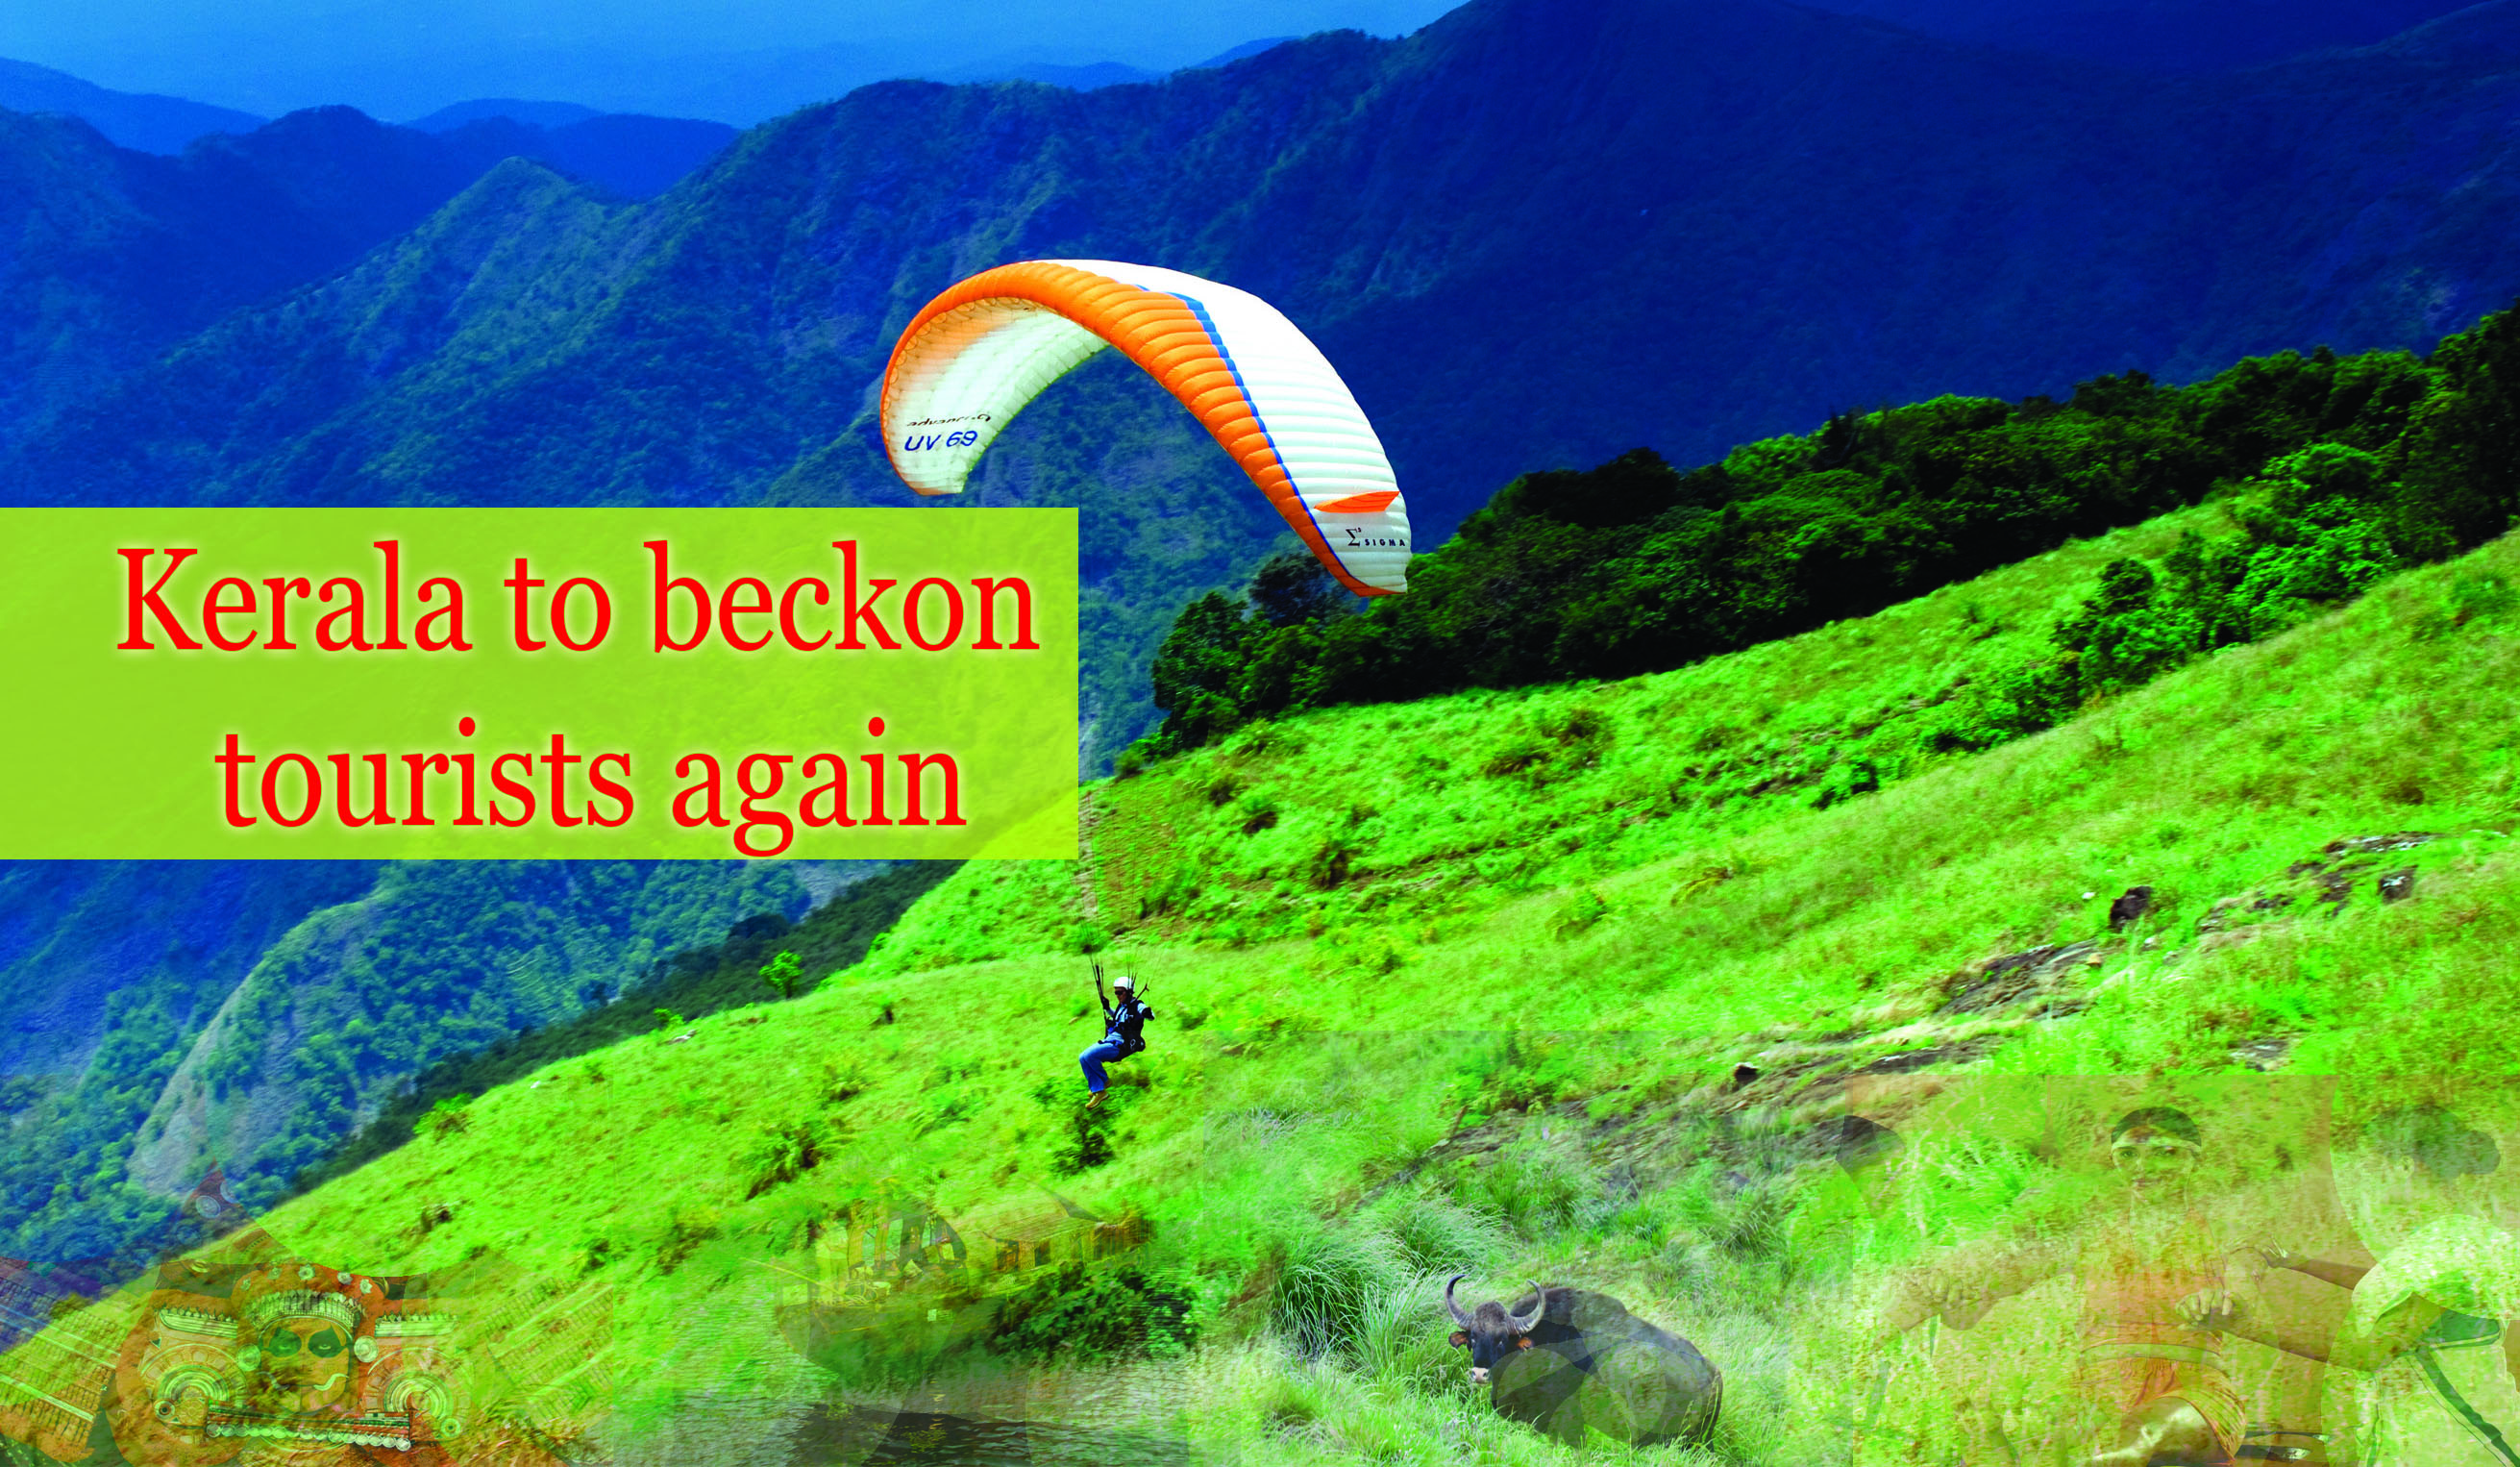 God's Own Country to beckon tourists again